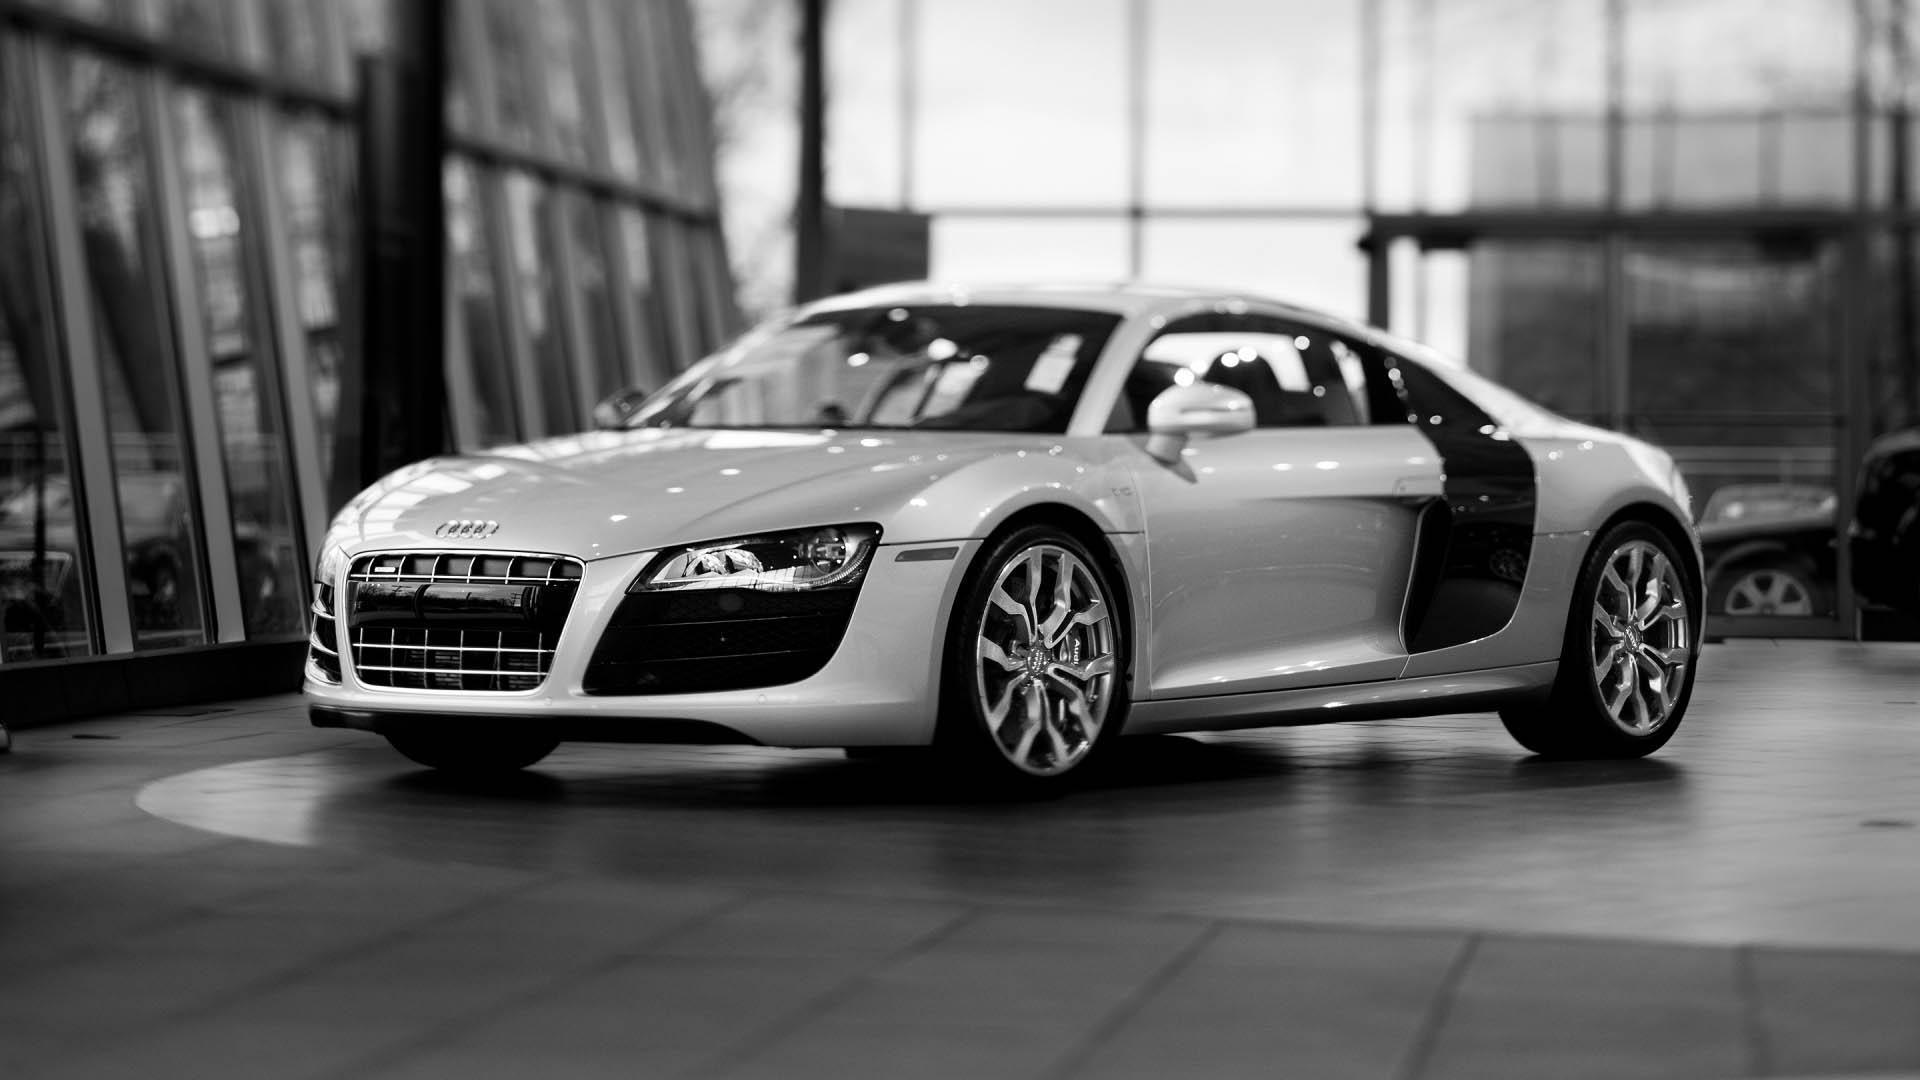 Audi R8 Hd Wallpapers Free Download Wallpapers